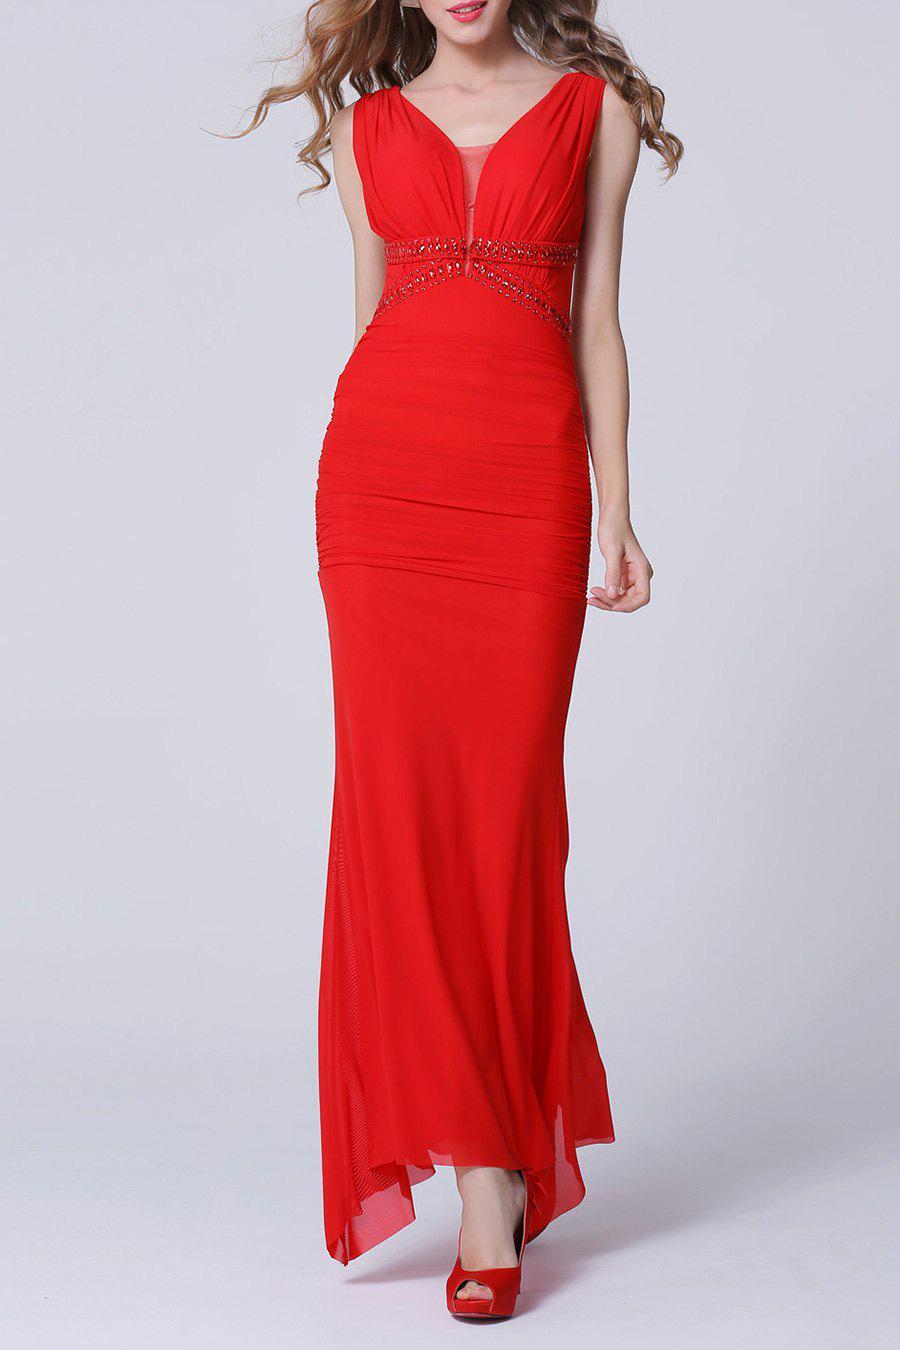 80 Off Backless Maxi Ruched Formal Slim Prom Dress